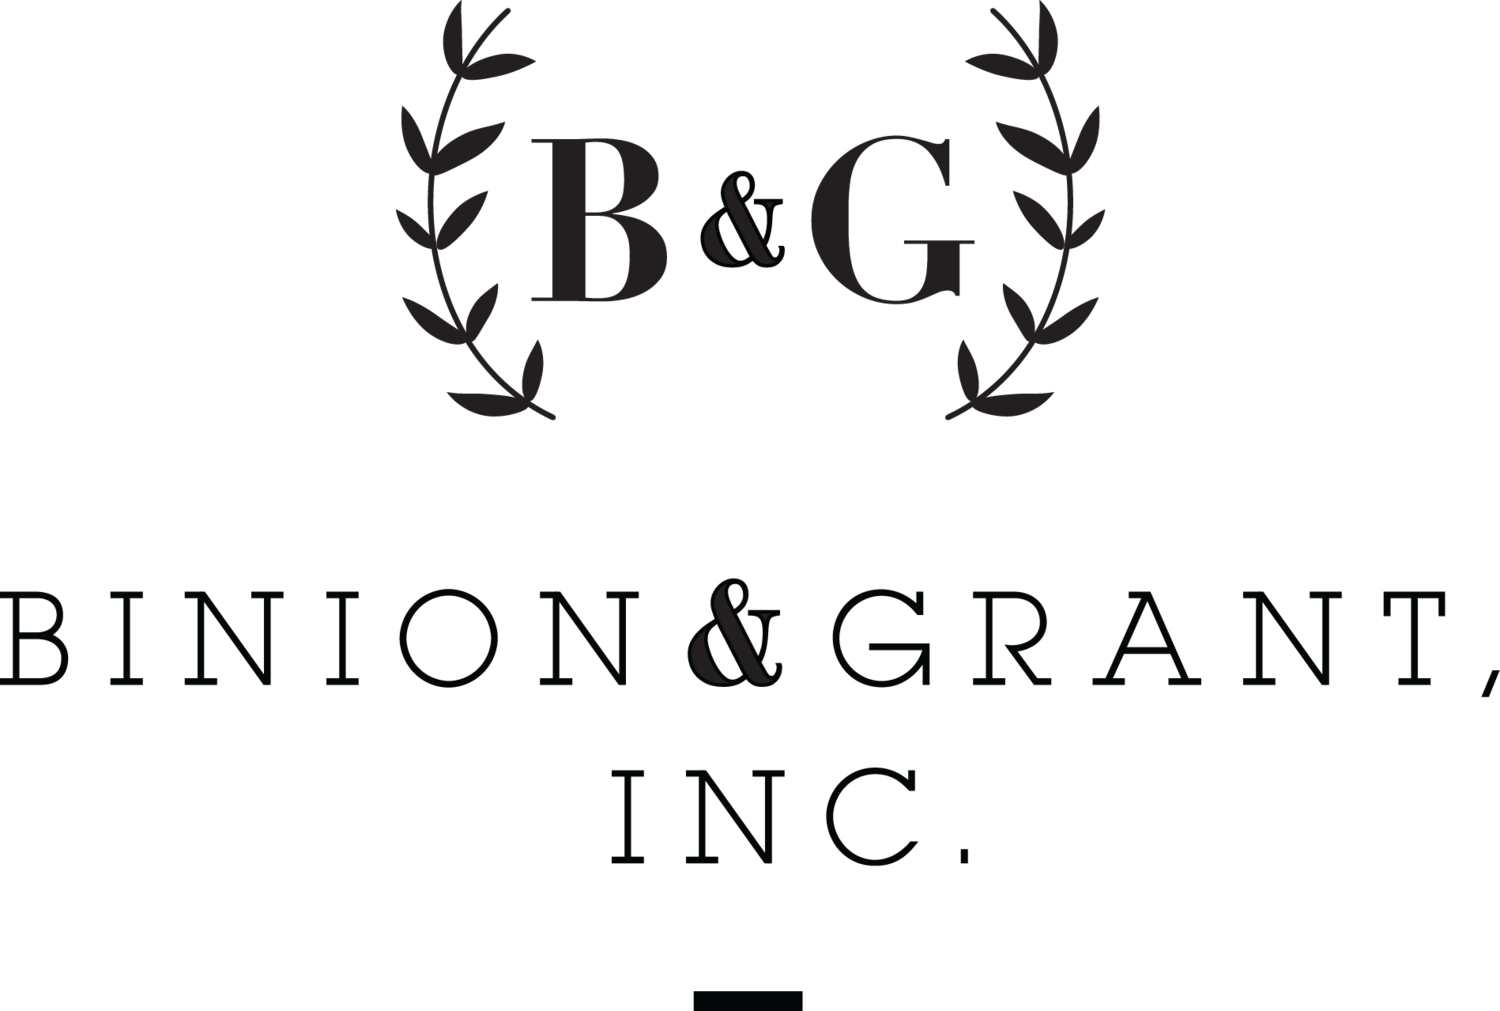 Binion & Grant, Inc